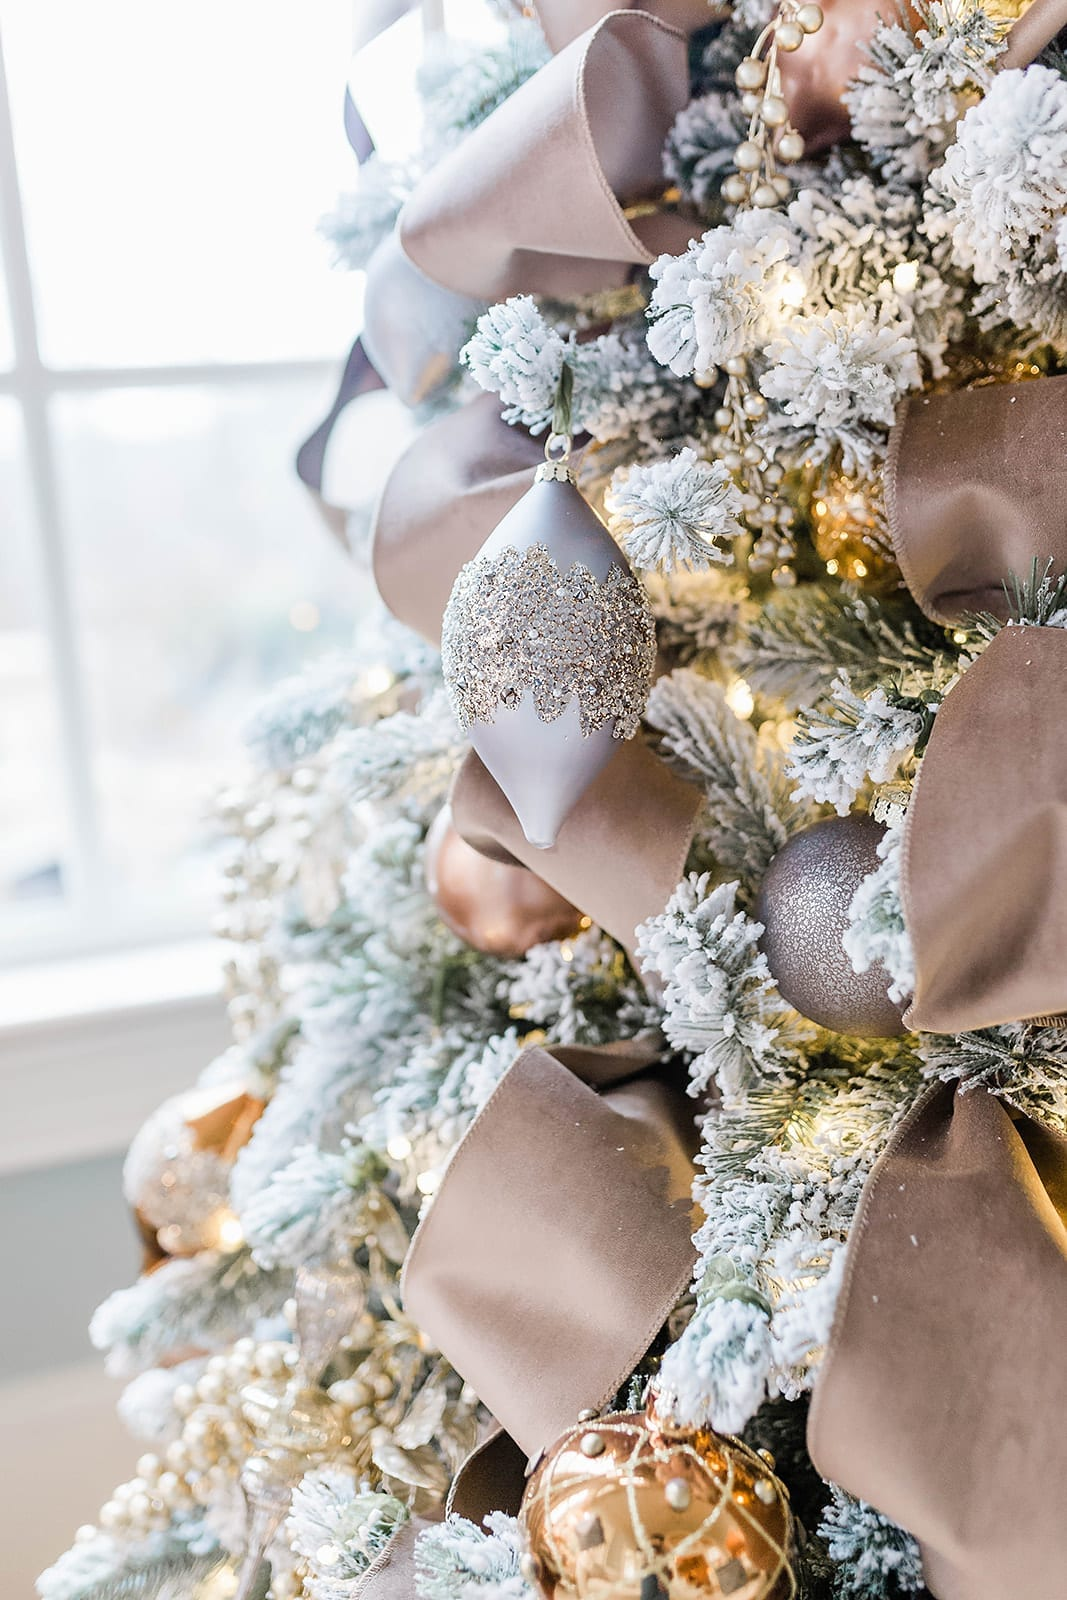 A Taupe velvet ribbon Christmas tree with blue ornaments from Frontgate collection and Frontgate tree topper. A gold Christmas skirt finishes off the taupe and navy blue accented flocked Christmas tree.